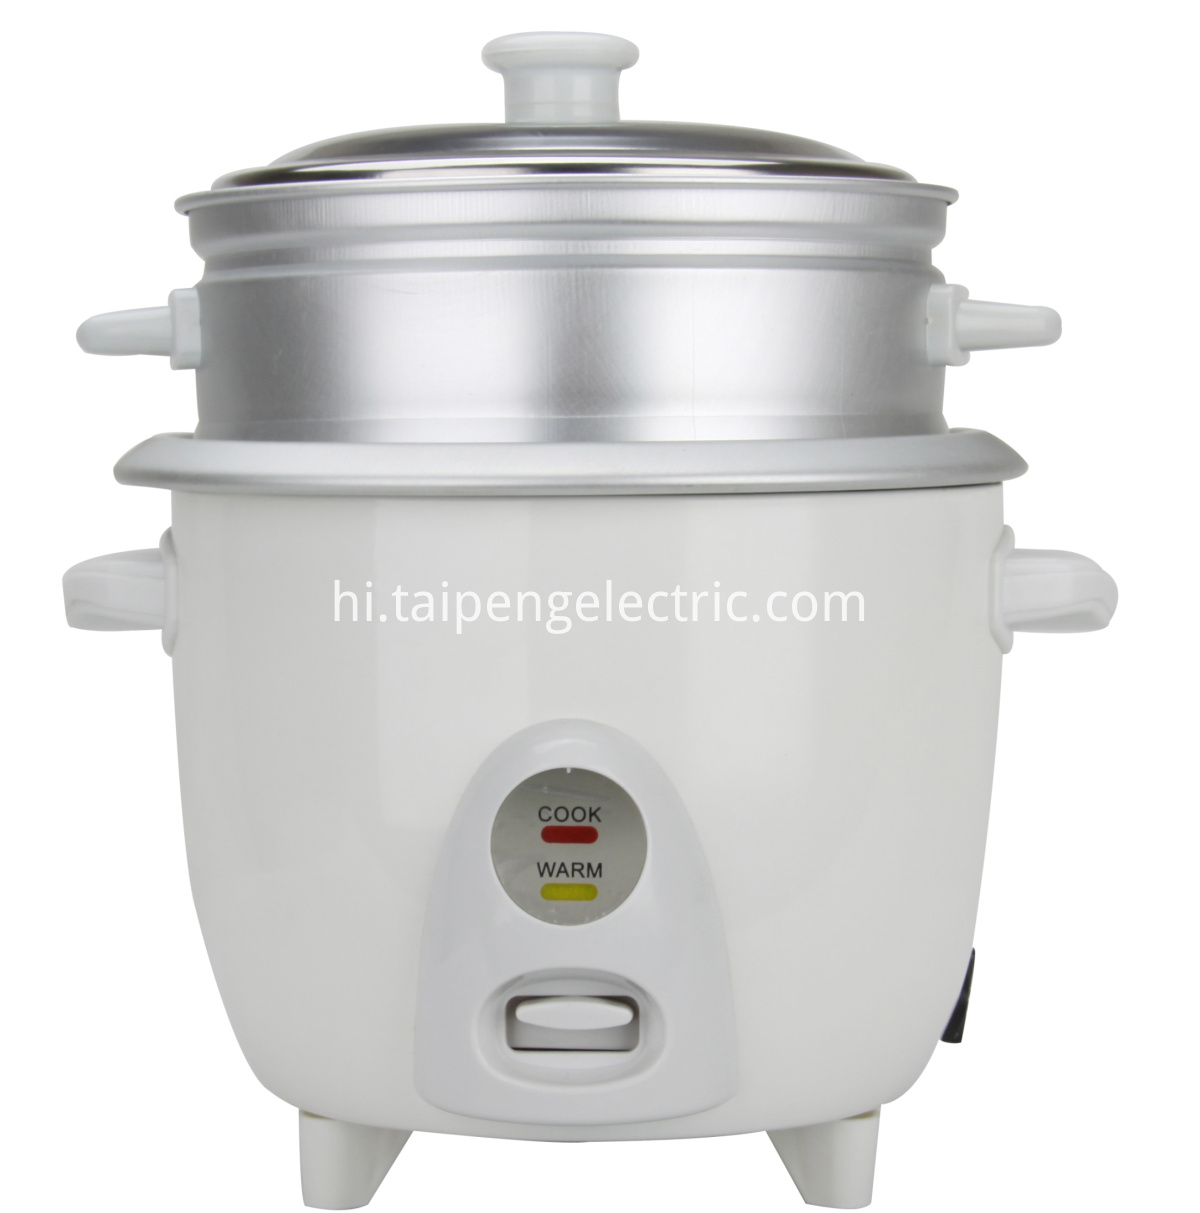 Drum type rice cooker with keep warm